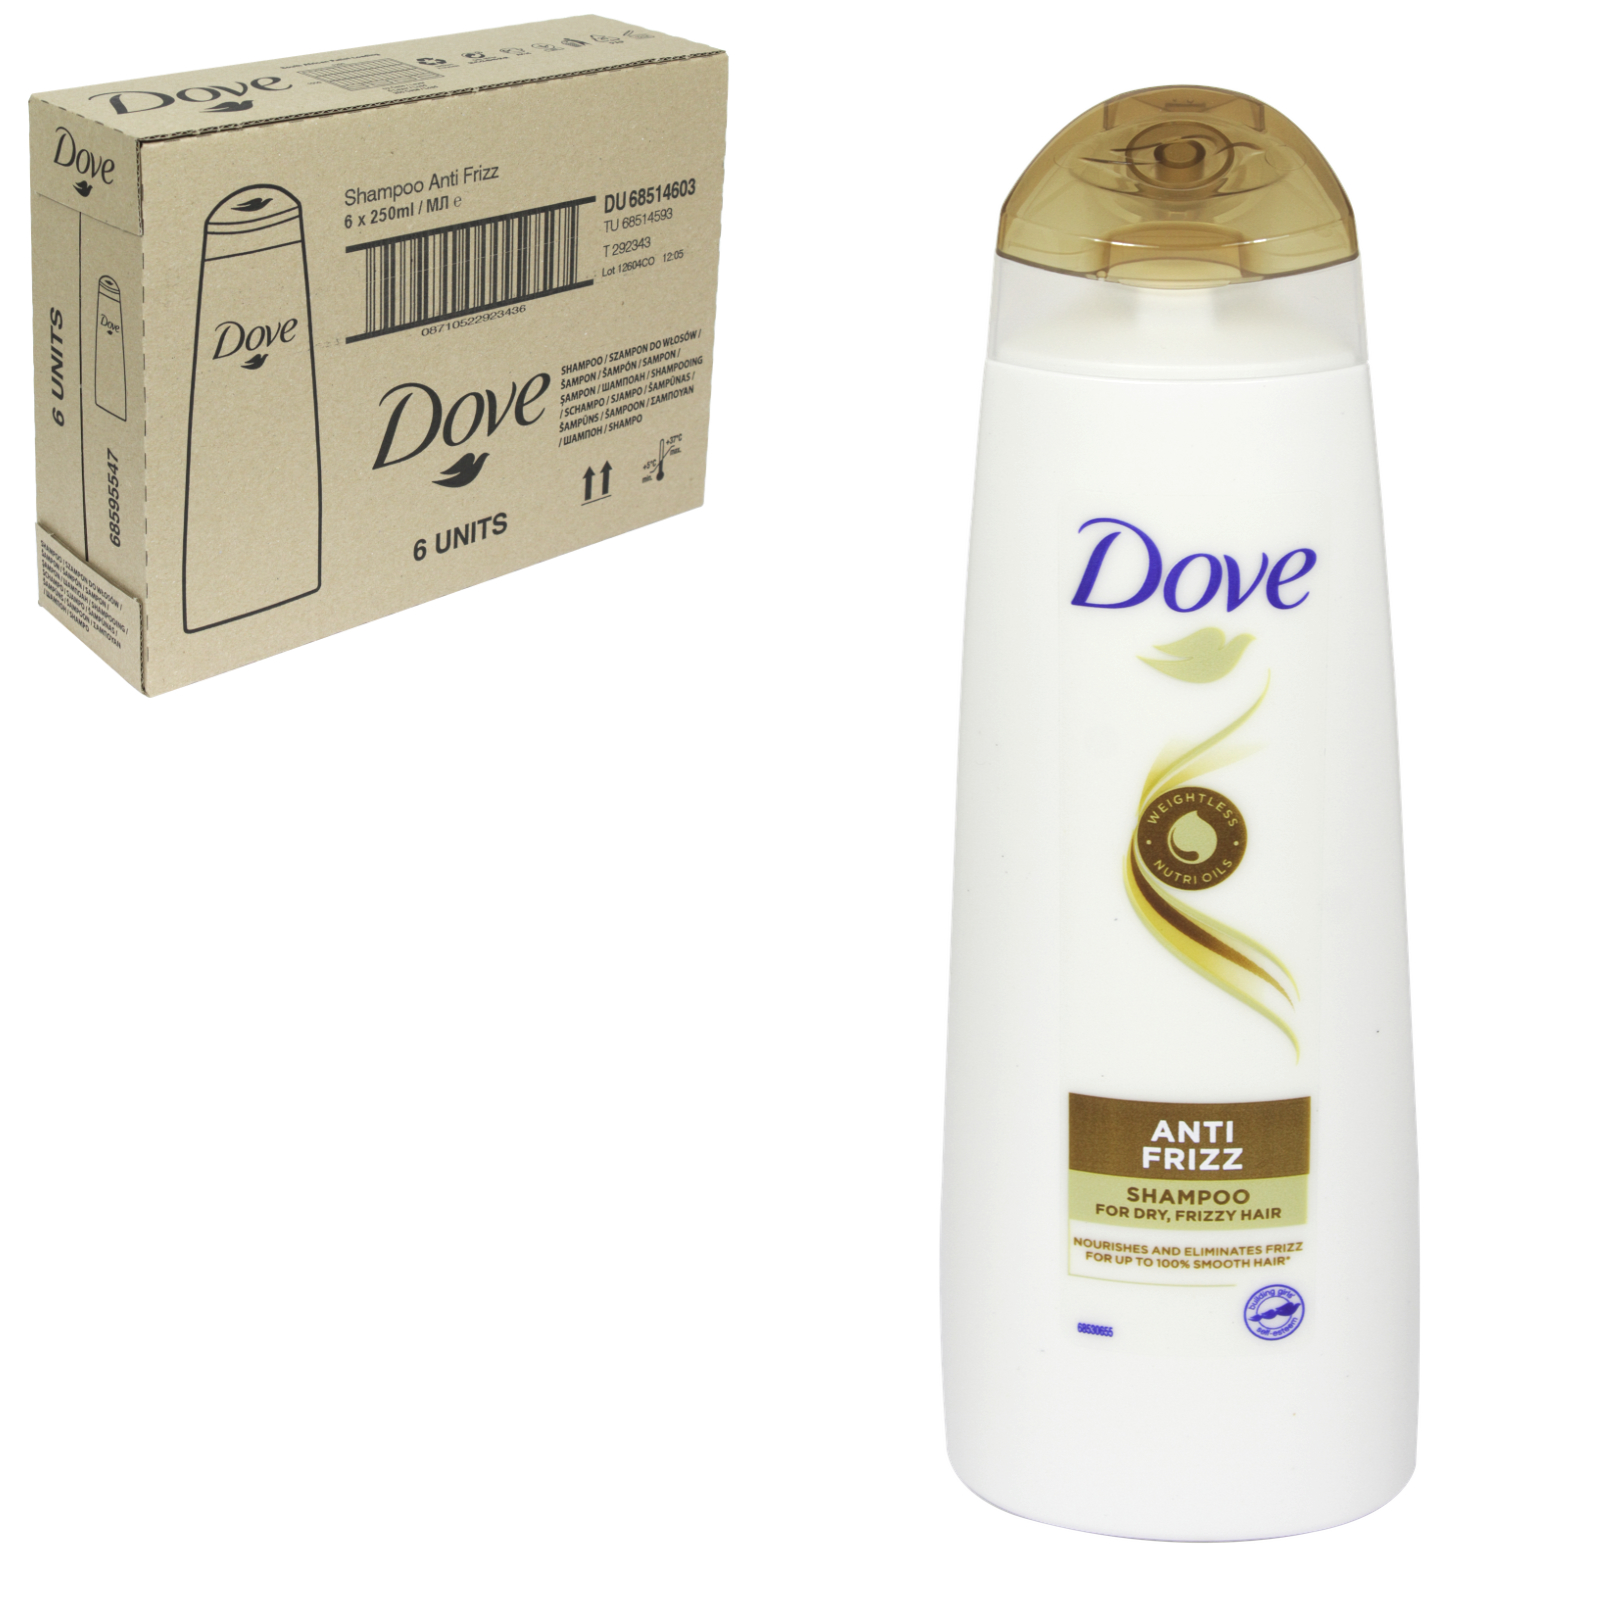 DOVE SHAMPOO 250ML NOURISHING OIL CARE X 6